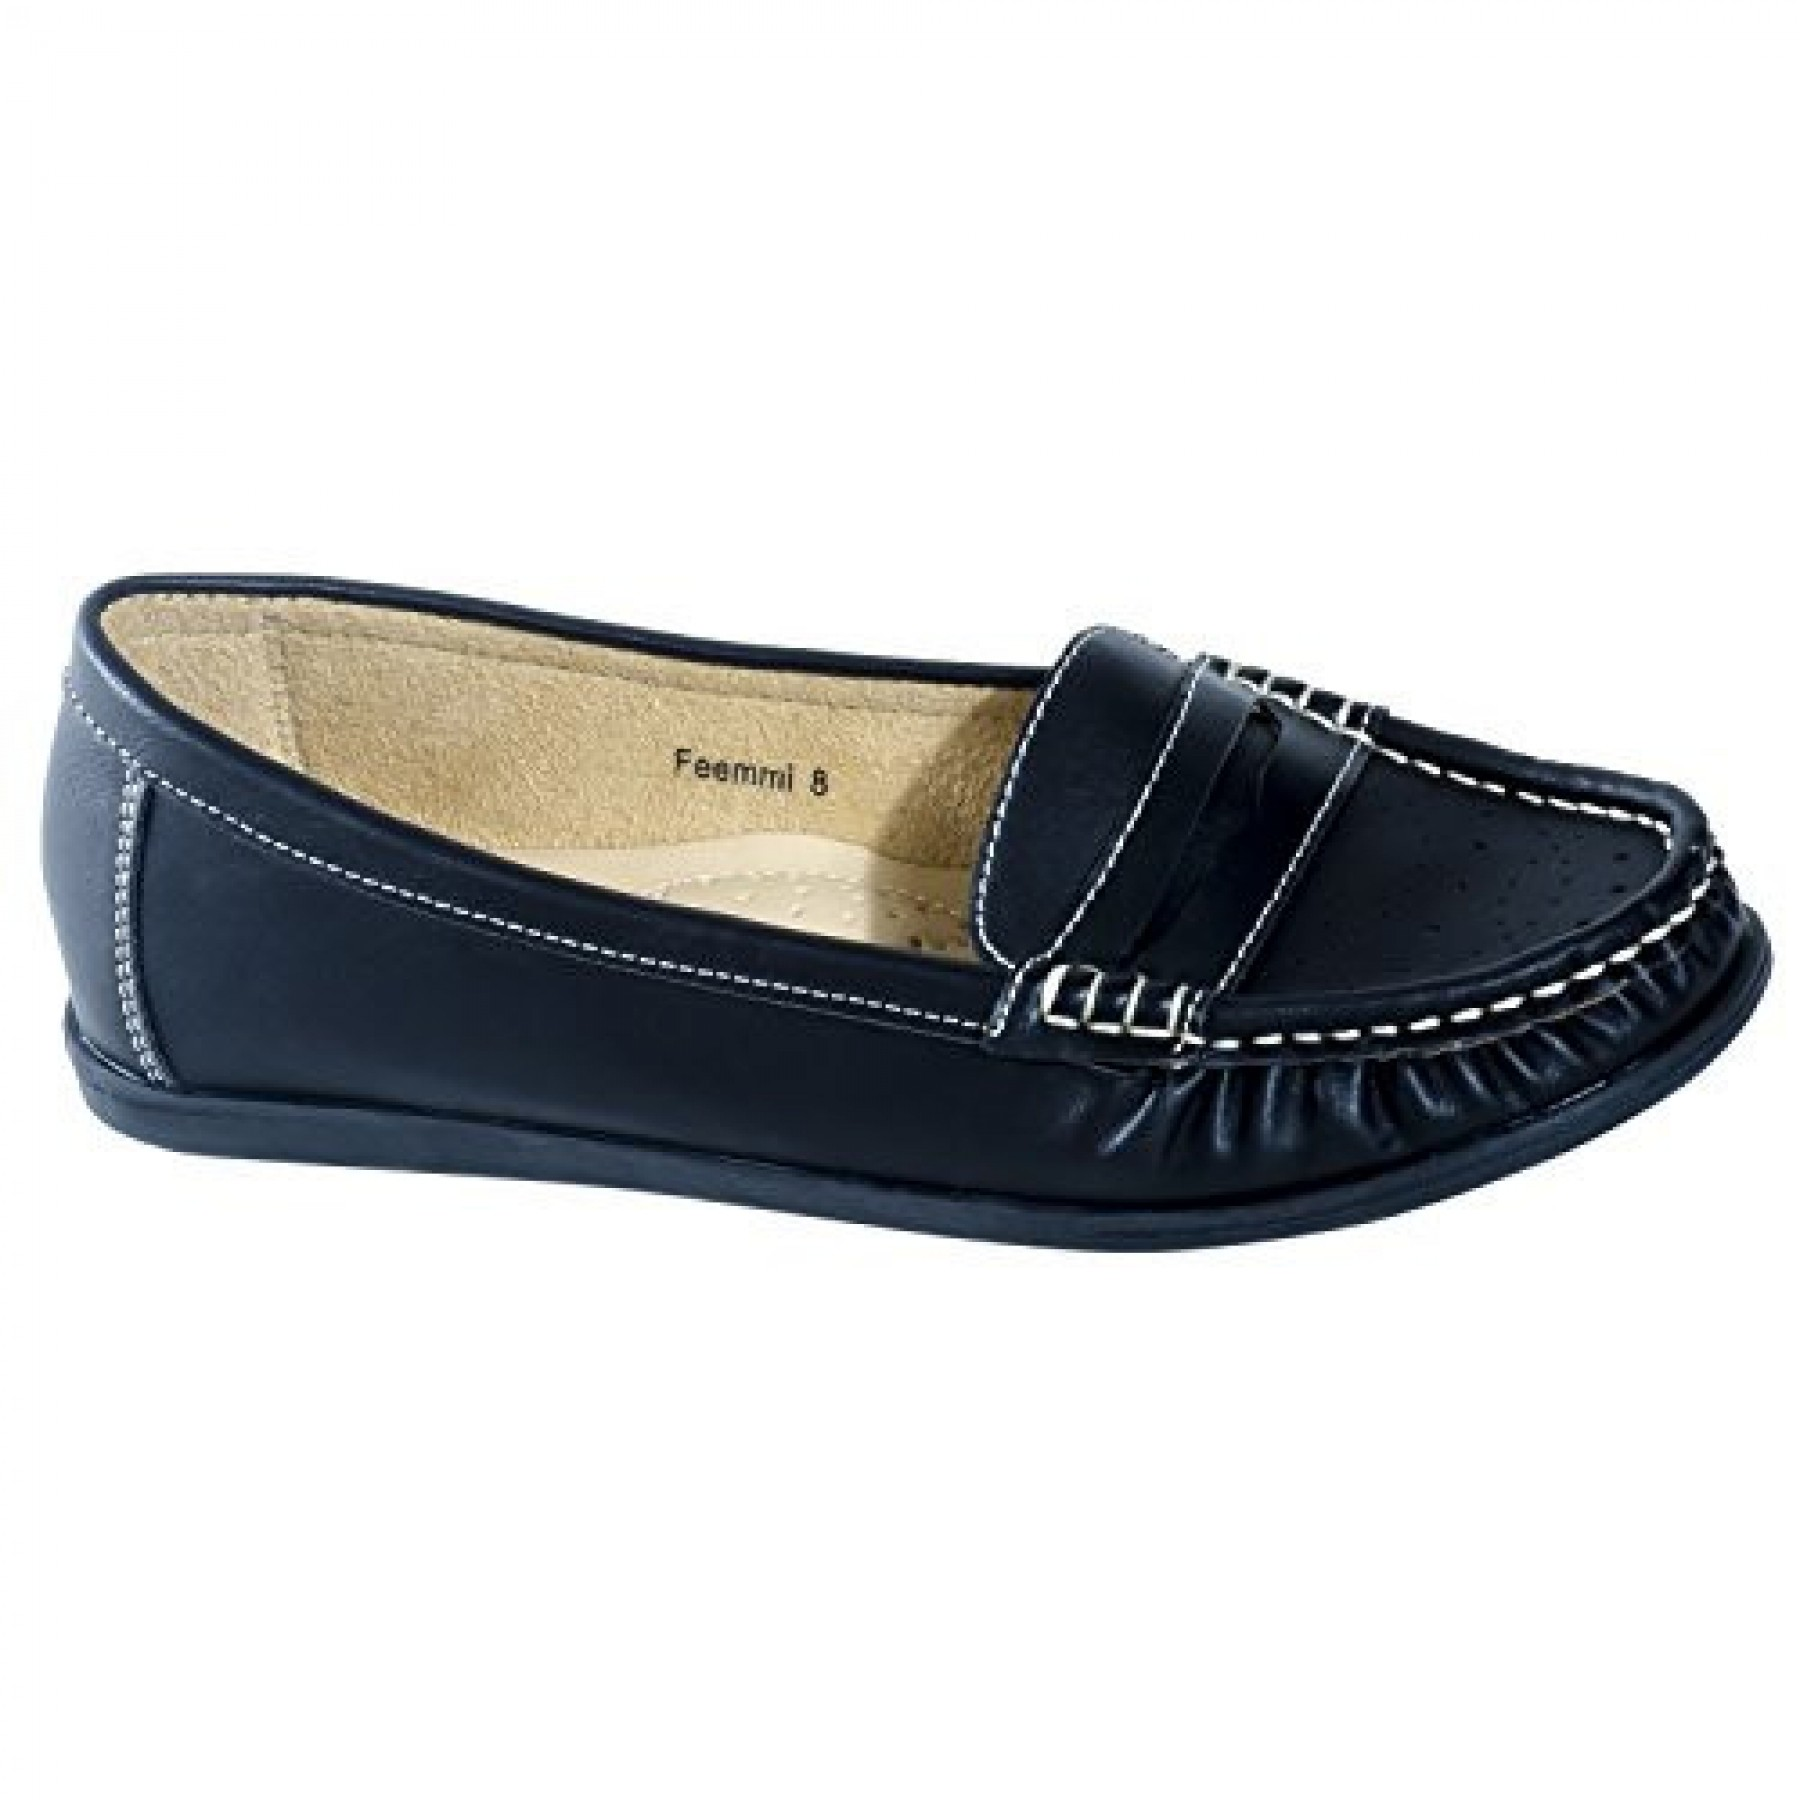 Women's Black Manmade Feemmi Loafer Style Flat with Contrast Stitching